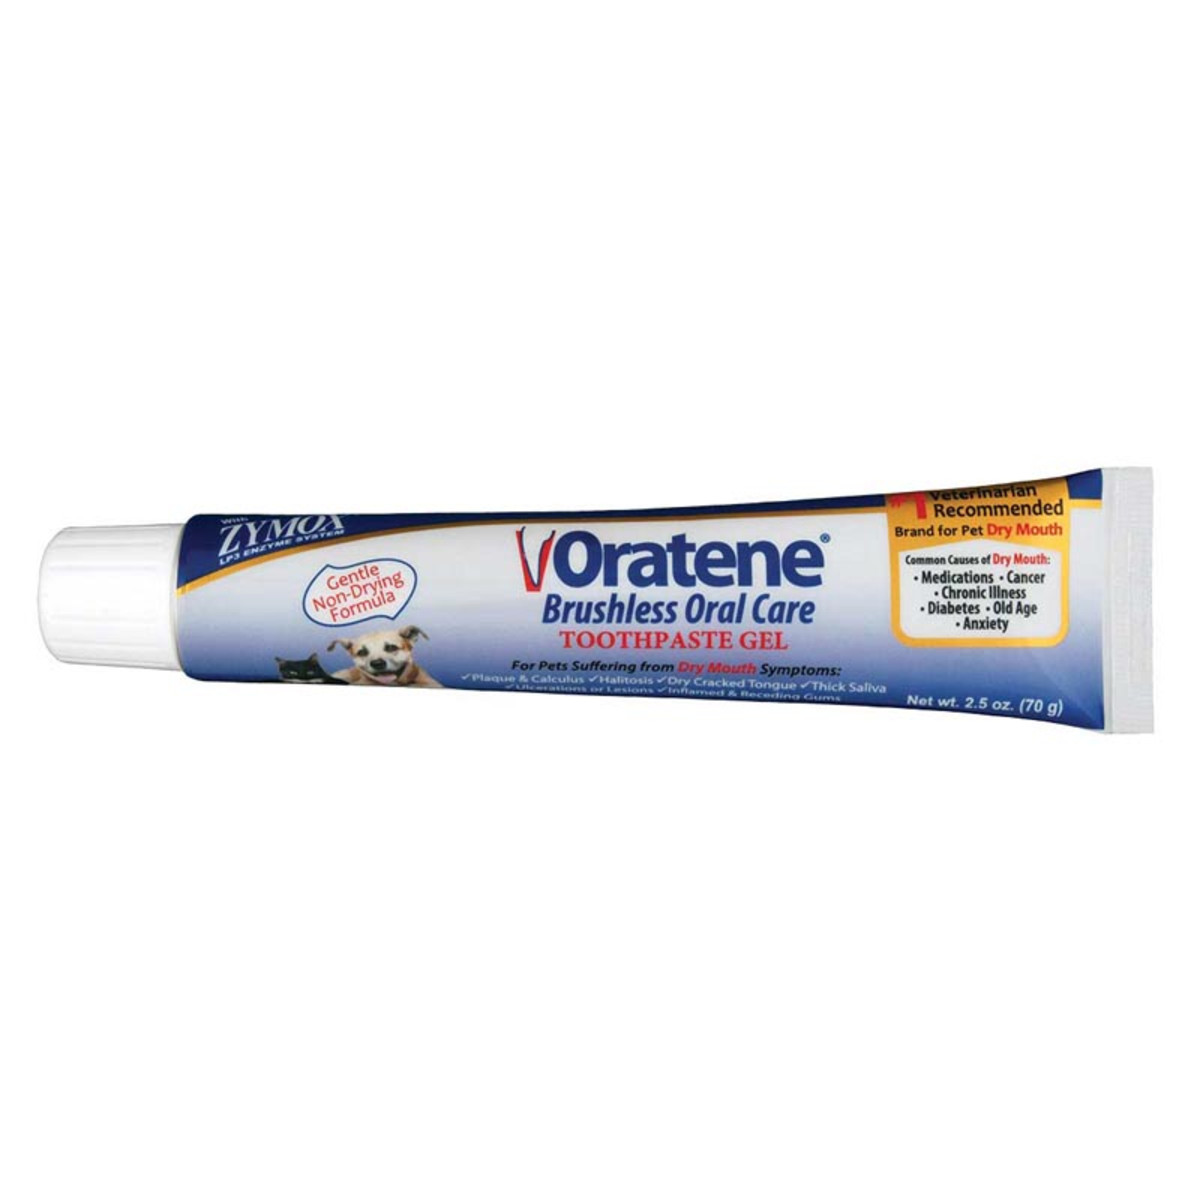 Zymox Oratene Brushless Oral Care Toothpaste Dental Gel for Dogs 2.5 oz